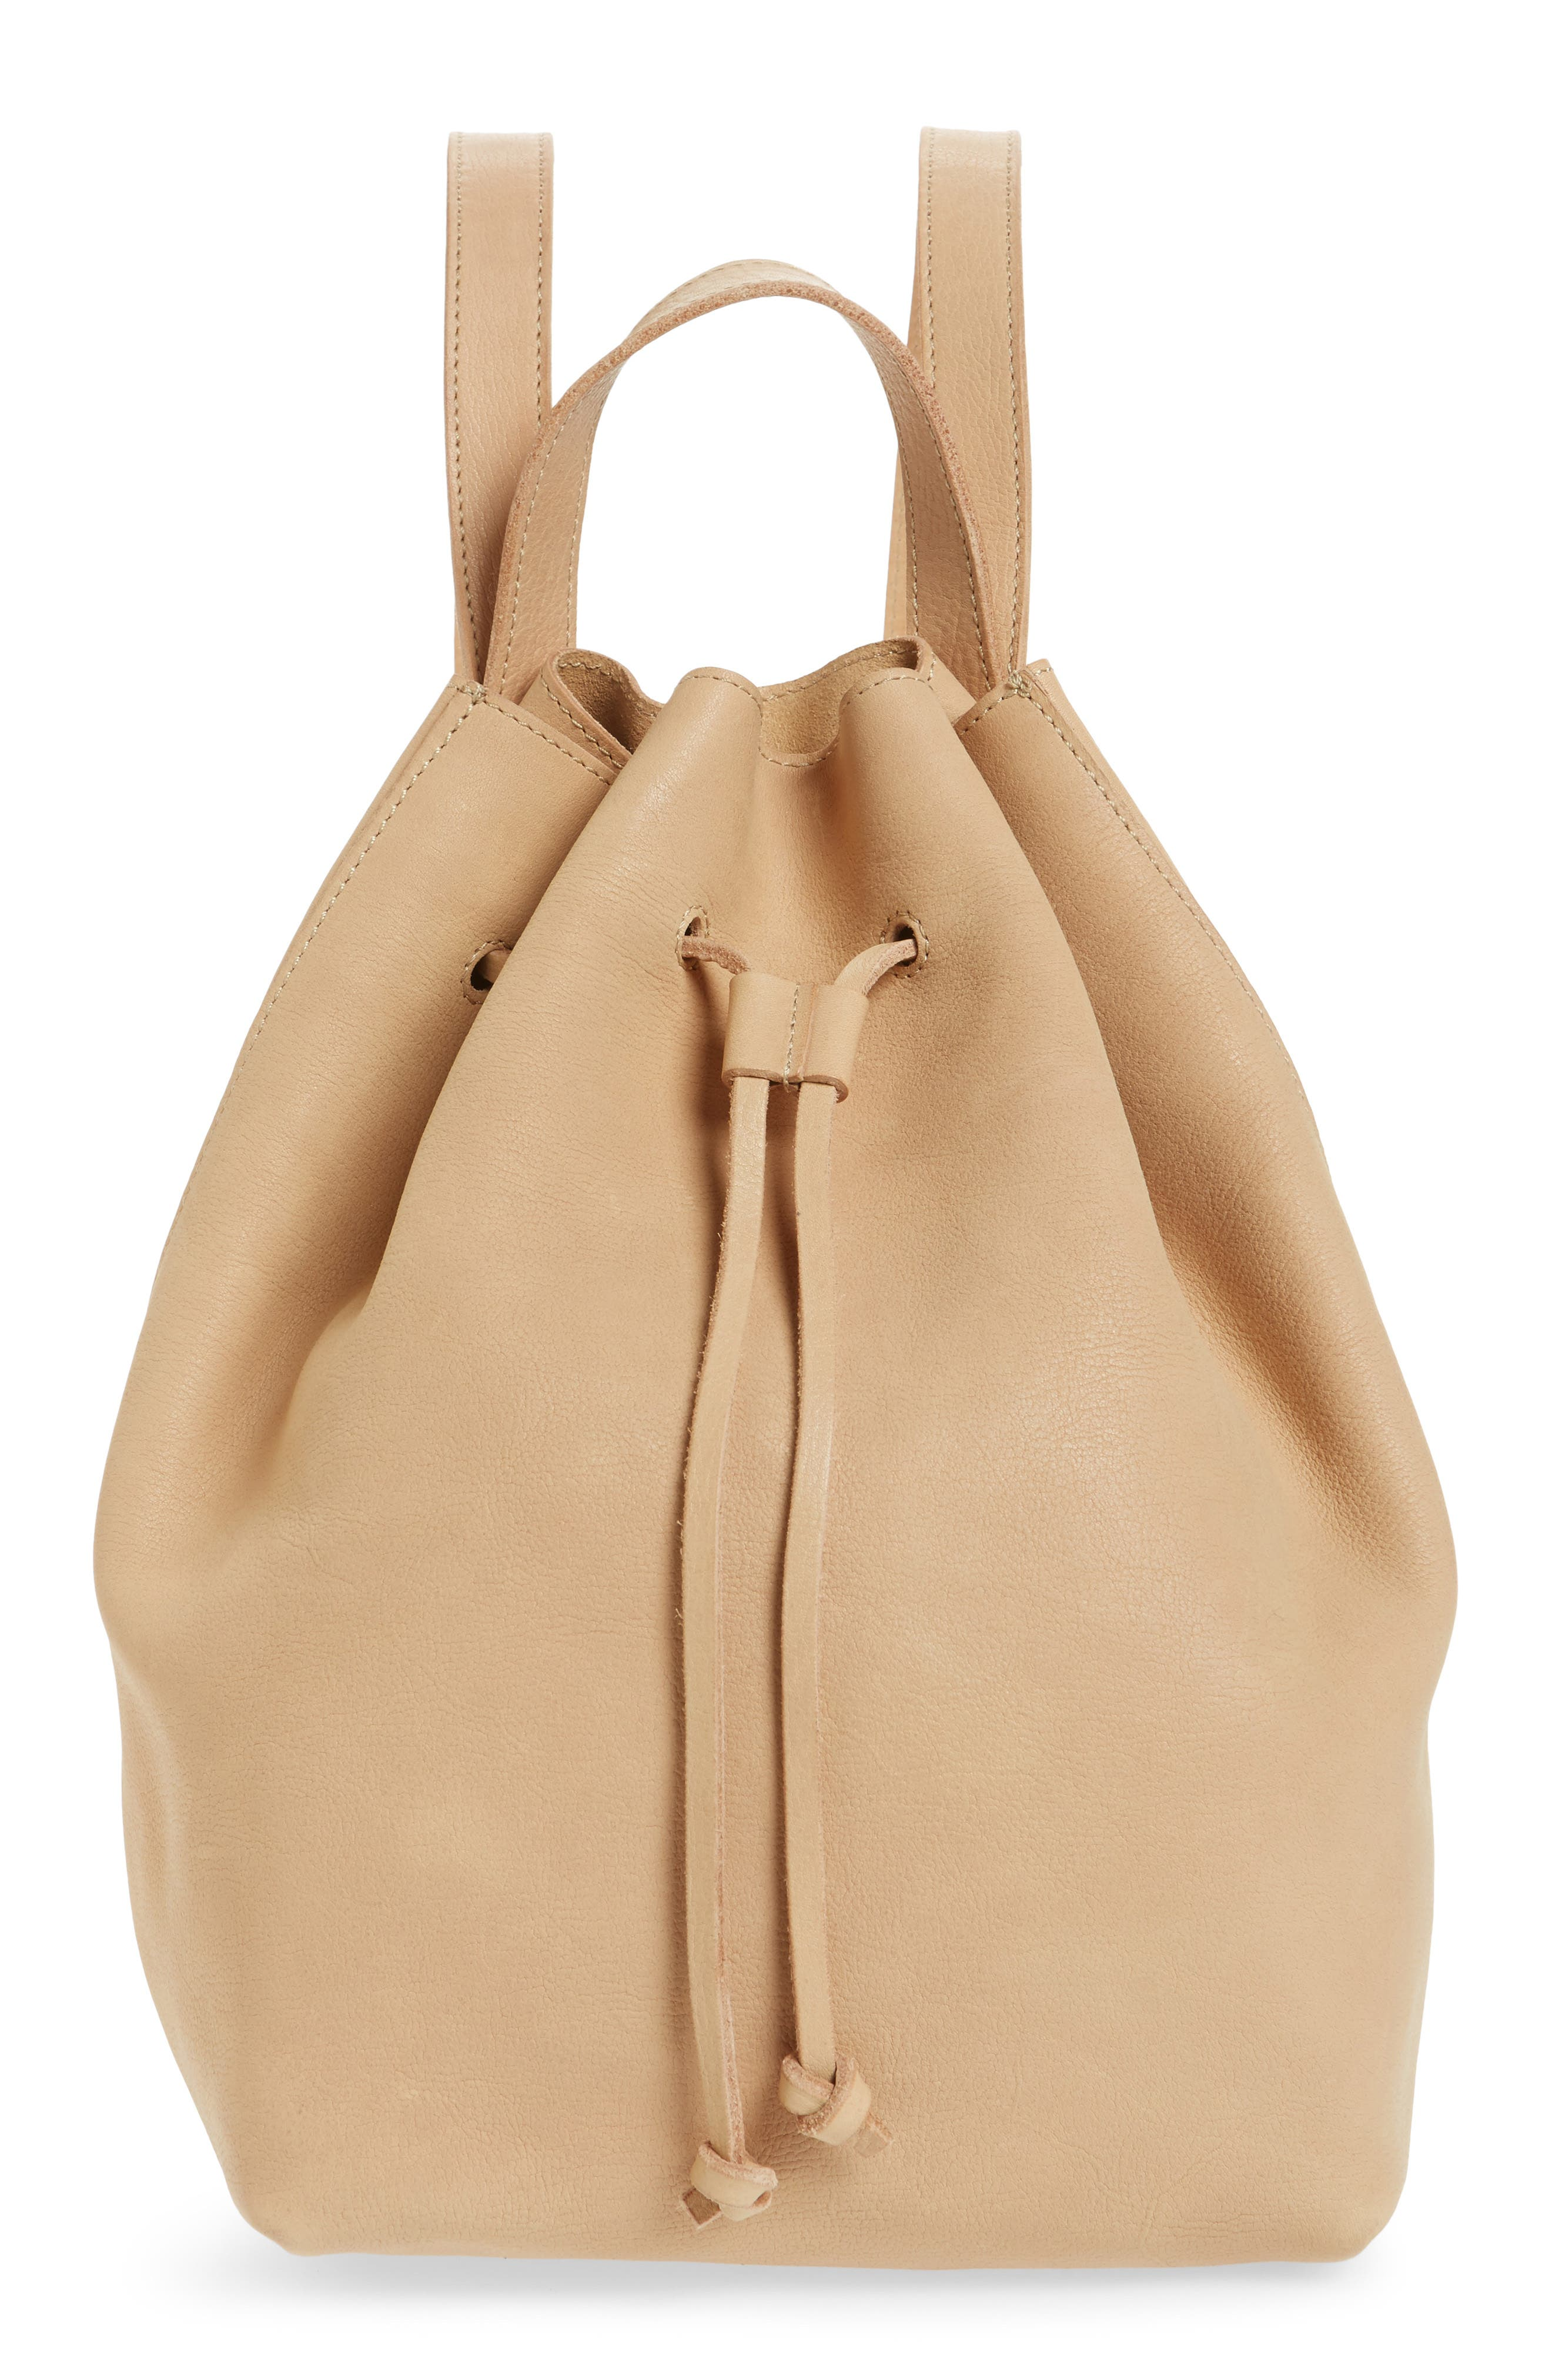 SOMERSET LEATHER BACKPACK - IVORY